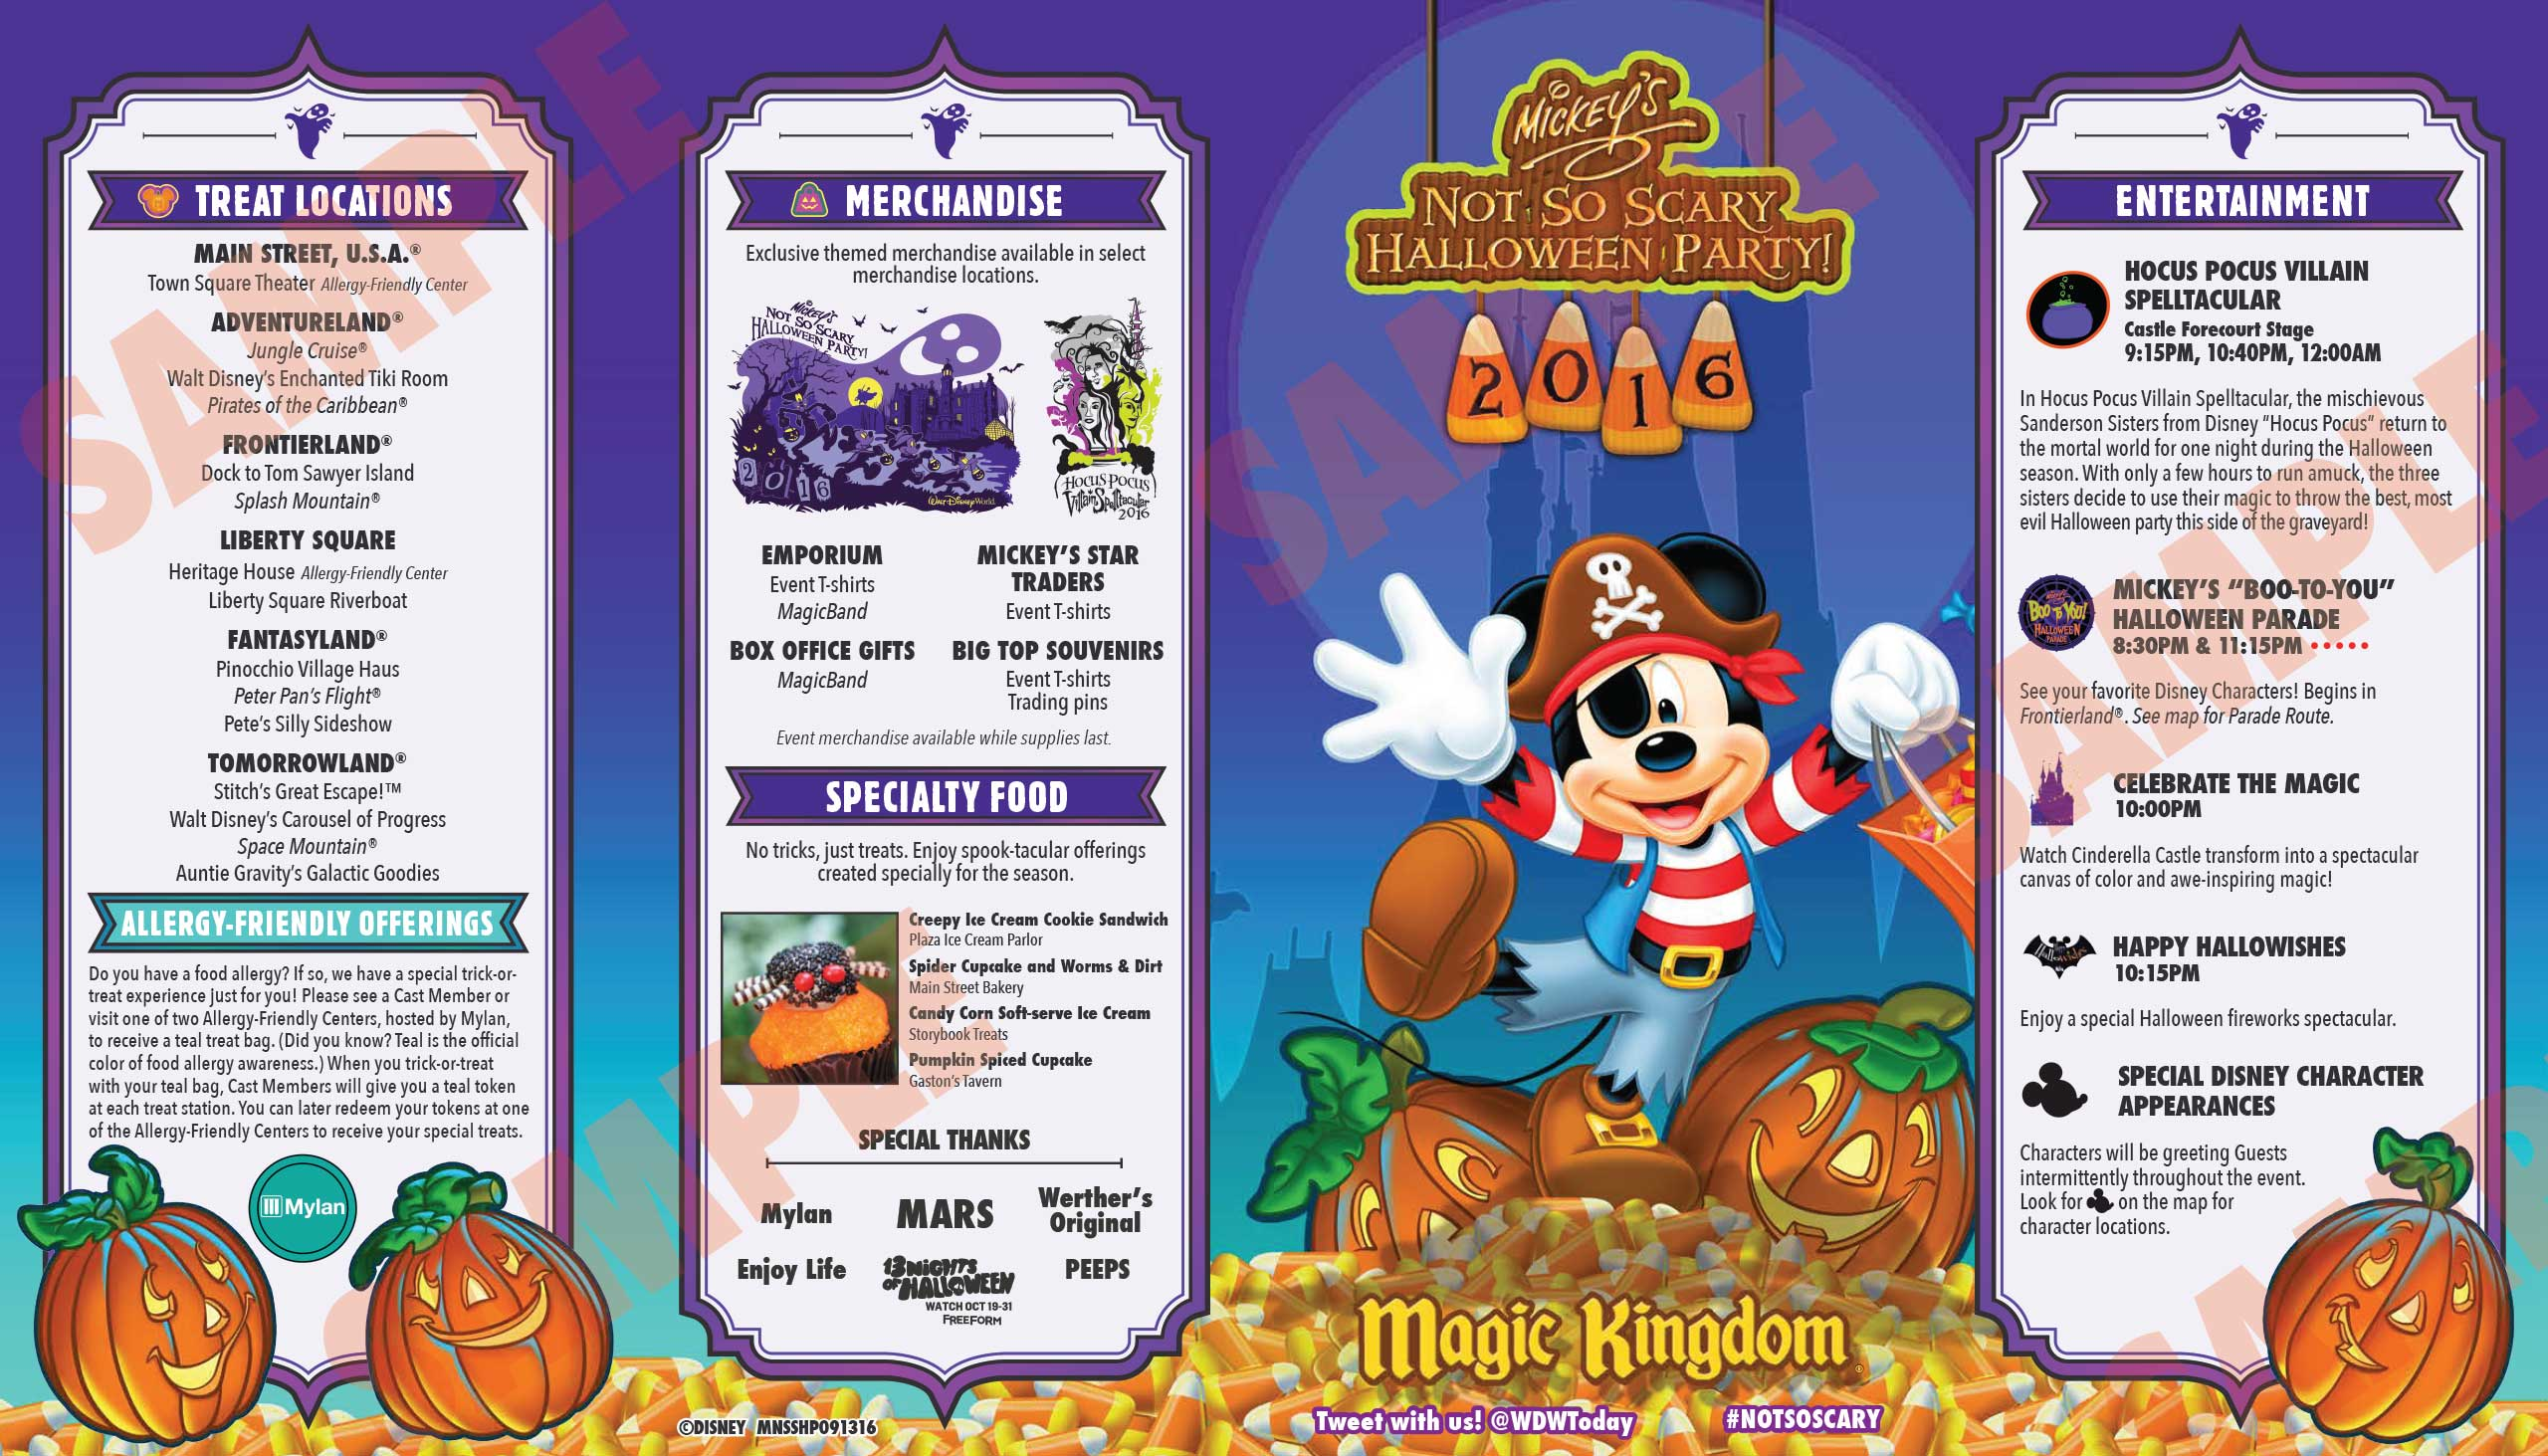 Mickey's Not-So-Scary Halloween Party guide map 2016 - Photo 1 of 2